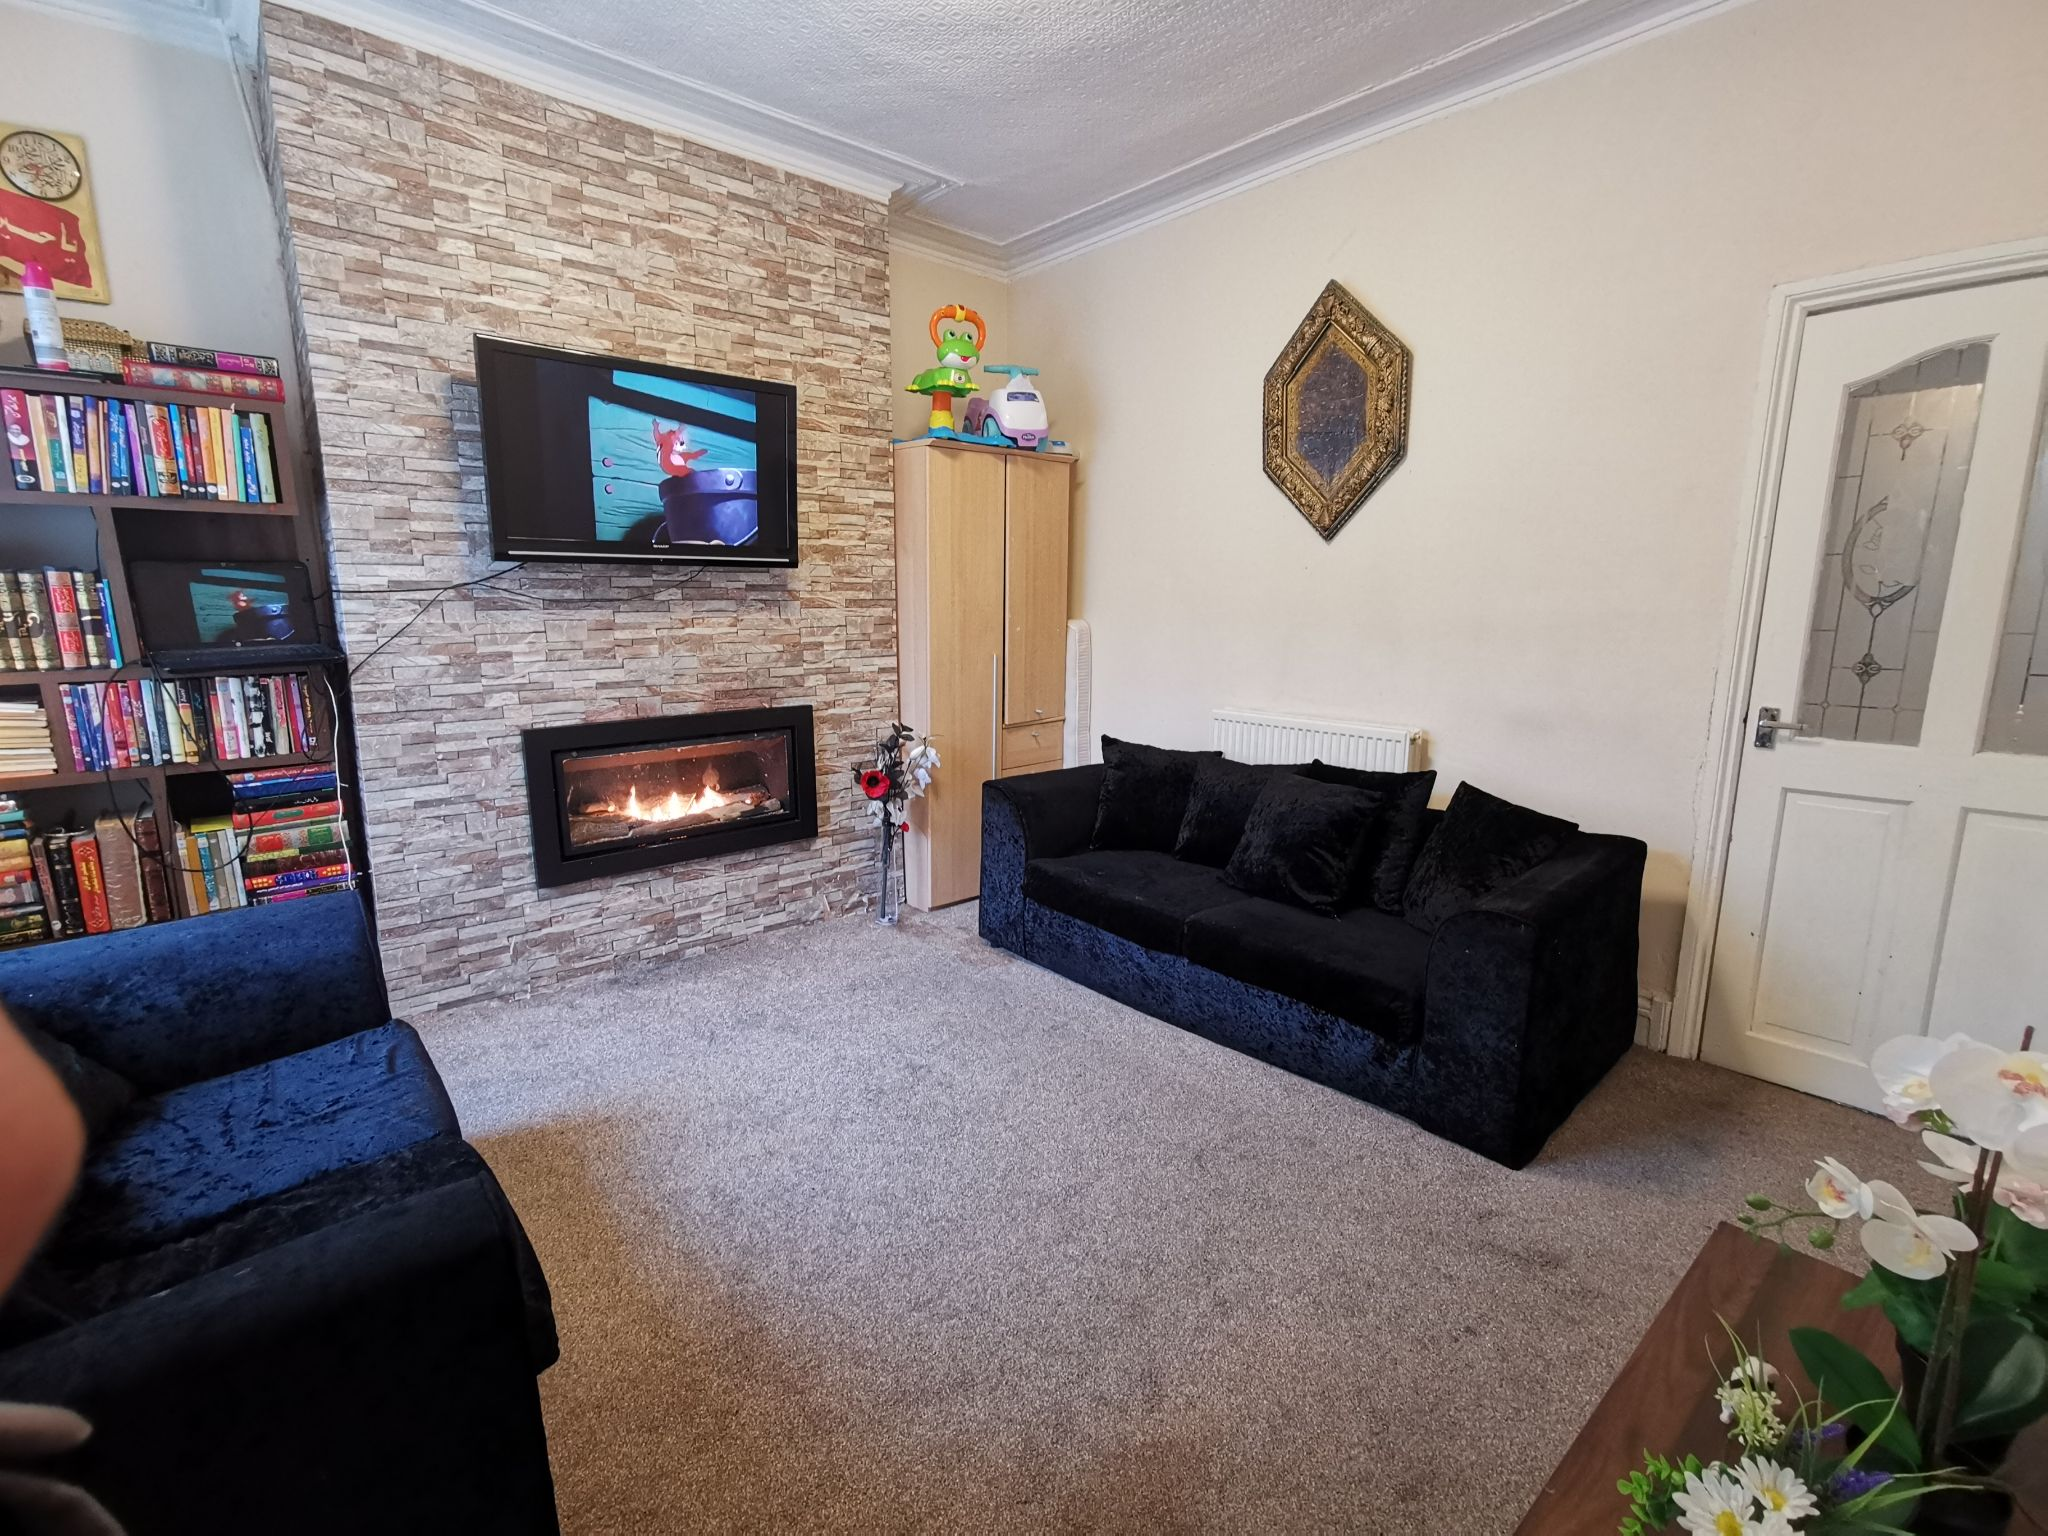 4 bedroom mid terraced house Available in Bradford - Property photograph.